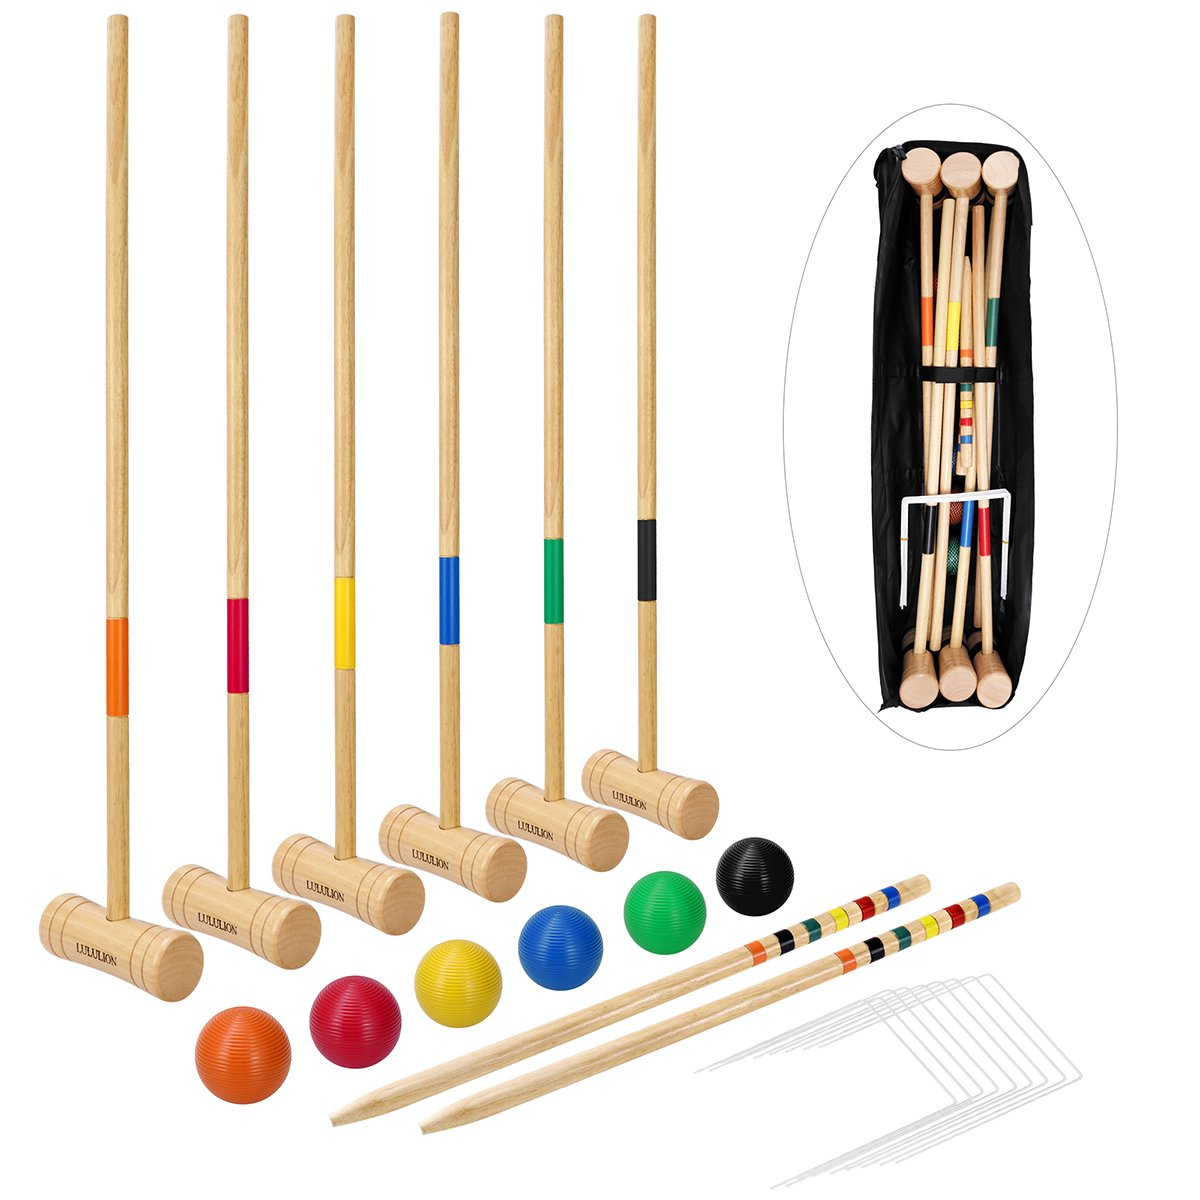 LULULION Deluxe Croquet Set for Adults & Kids - Includes Extra Large Carrying Bag - 6 Players, Durable Hardwood Material, Perfect Backyard Party Game for Family, 31-Inch by LULULION